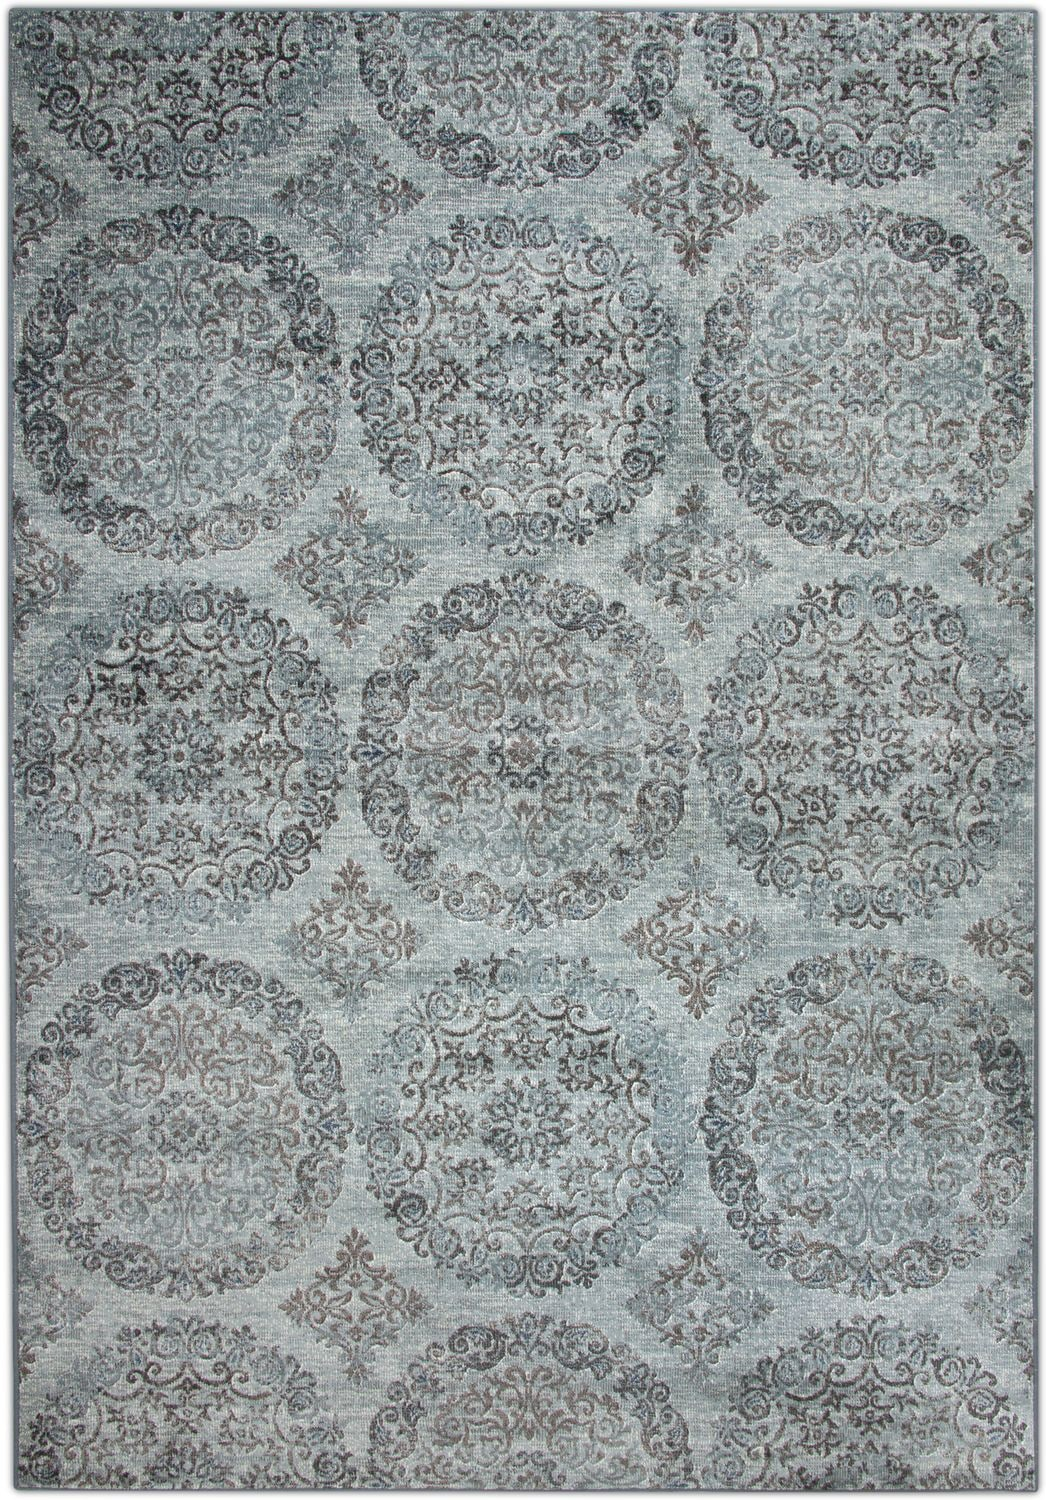 Rugs - Sonoma 5' x 8' Area Rug - Beige and Light Blue